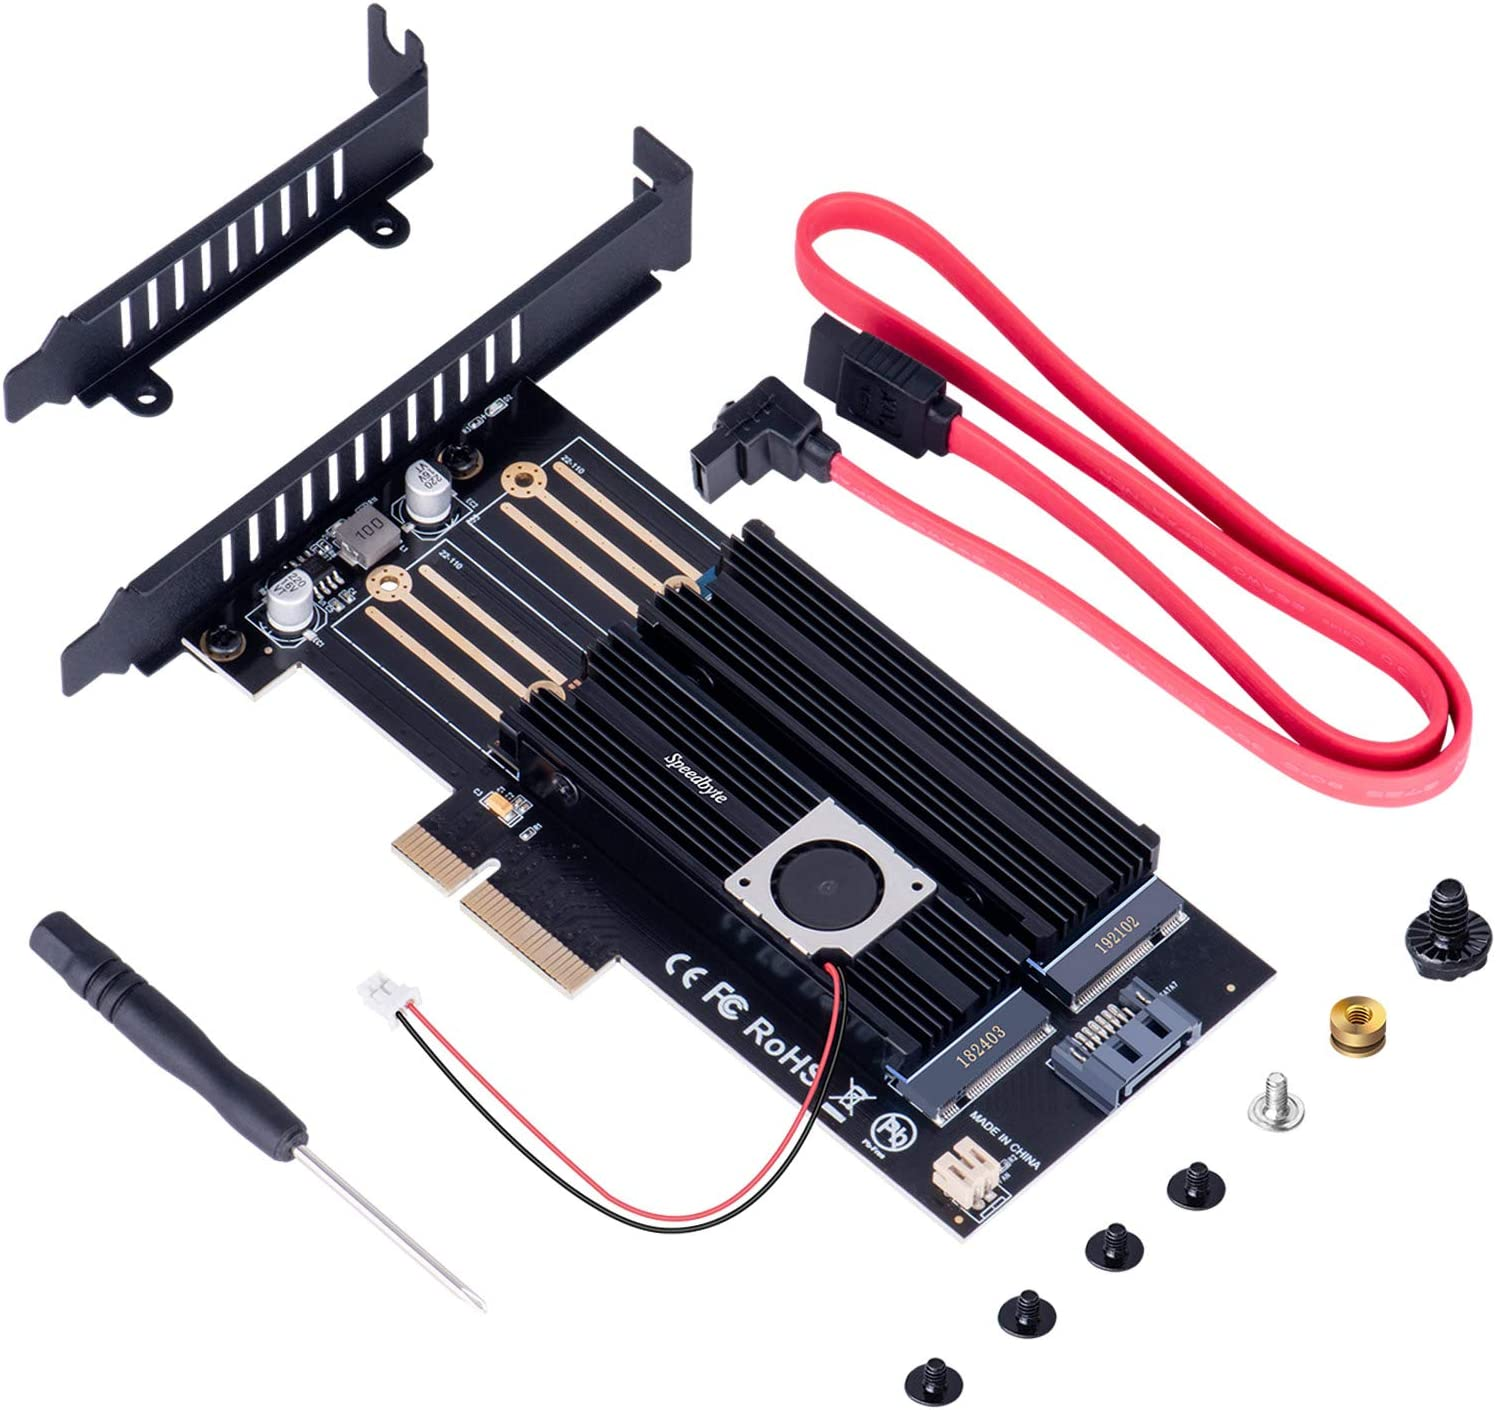 M Key B Key and M2 SATA SSD M.2 PCIe Adapter Support M.2 NVME SSD New NVMe SSD Dual Expansion Card 22110 2280 2260 2242 2230 NGFF SSDs PCI-e 3.0 x4 Slot with Fan Cooler and Heatsink for PC